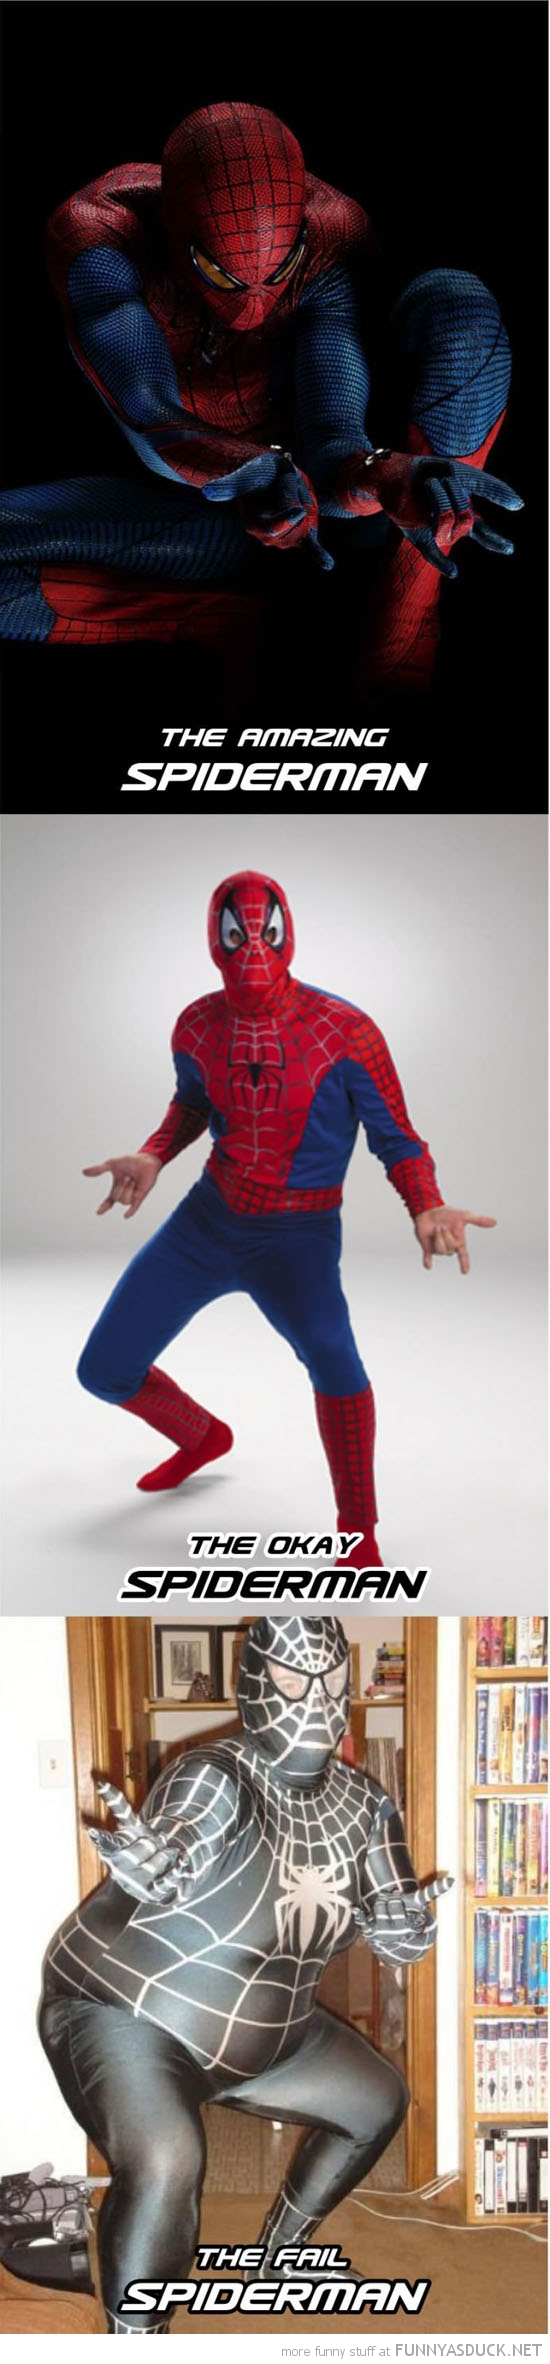 amazing okay fail spiderman fat guy costume man film movie funny pics pictures pic picture image photo images photos lol